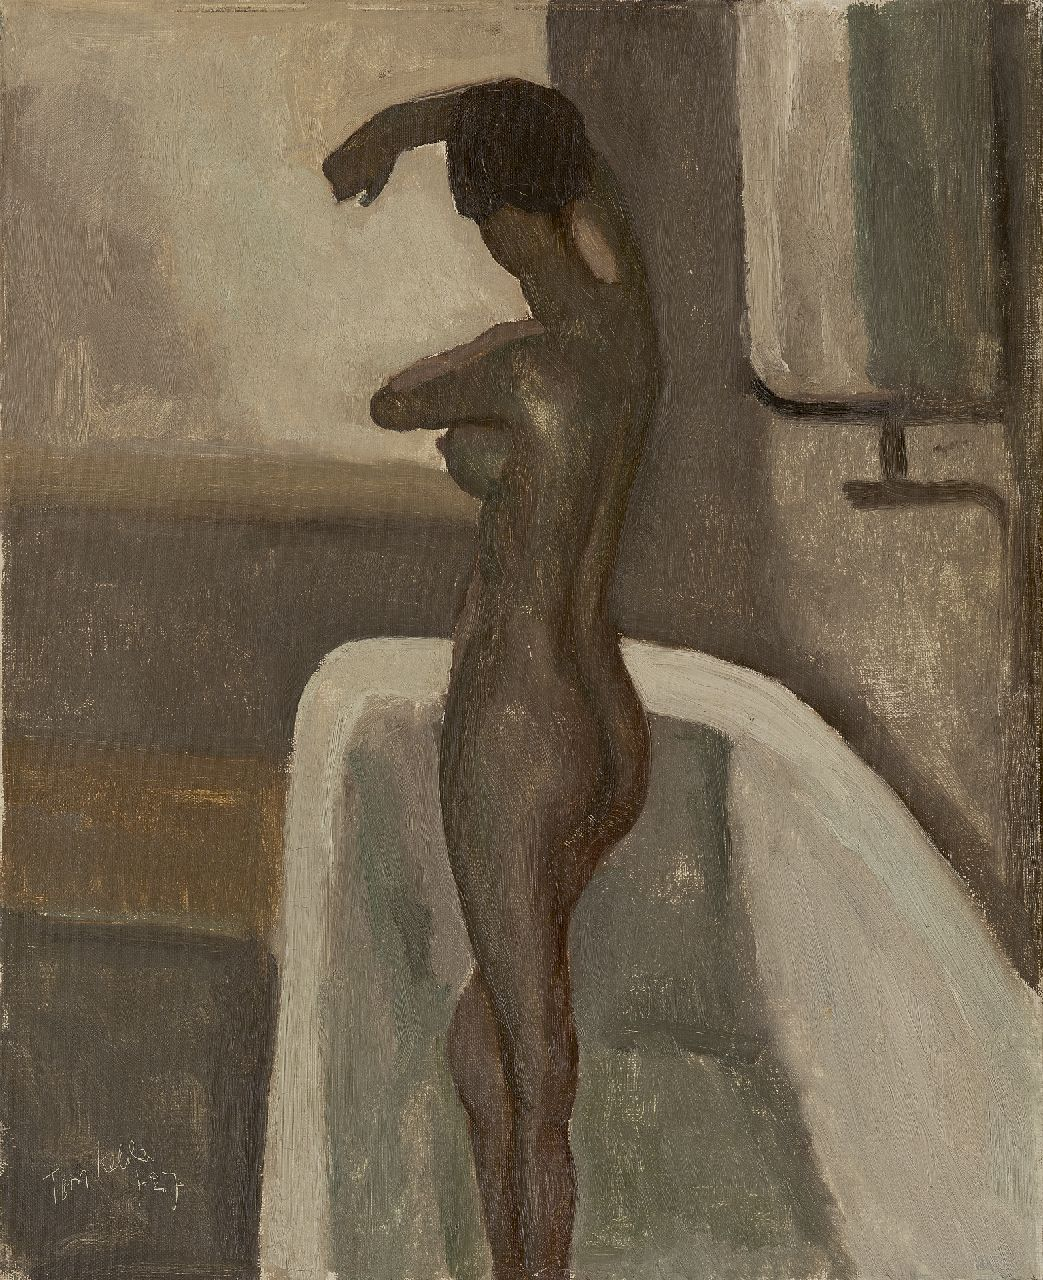 Kelder A.B.  | Antonius Bernardus 'Toon' Kelder | Paintings offered for sale | Female nude standing in the bathtub, oil on canvas 56.0 x 46.3 cm, signed l.l. and dated '27